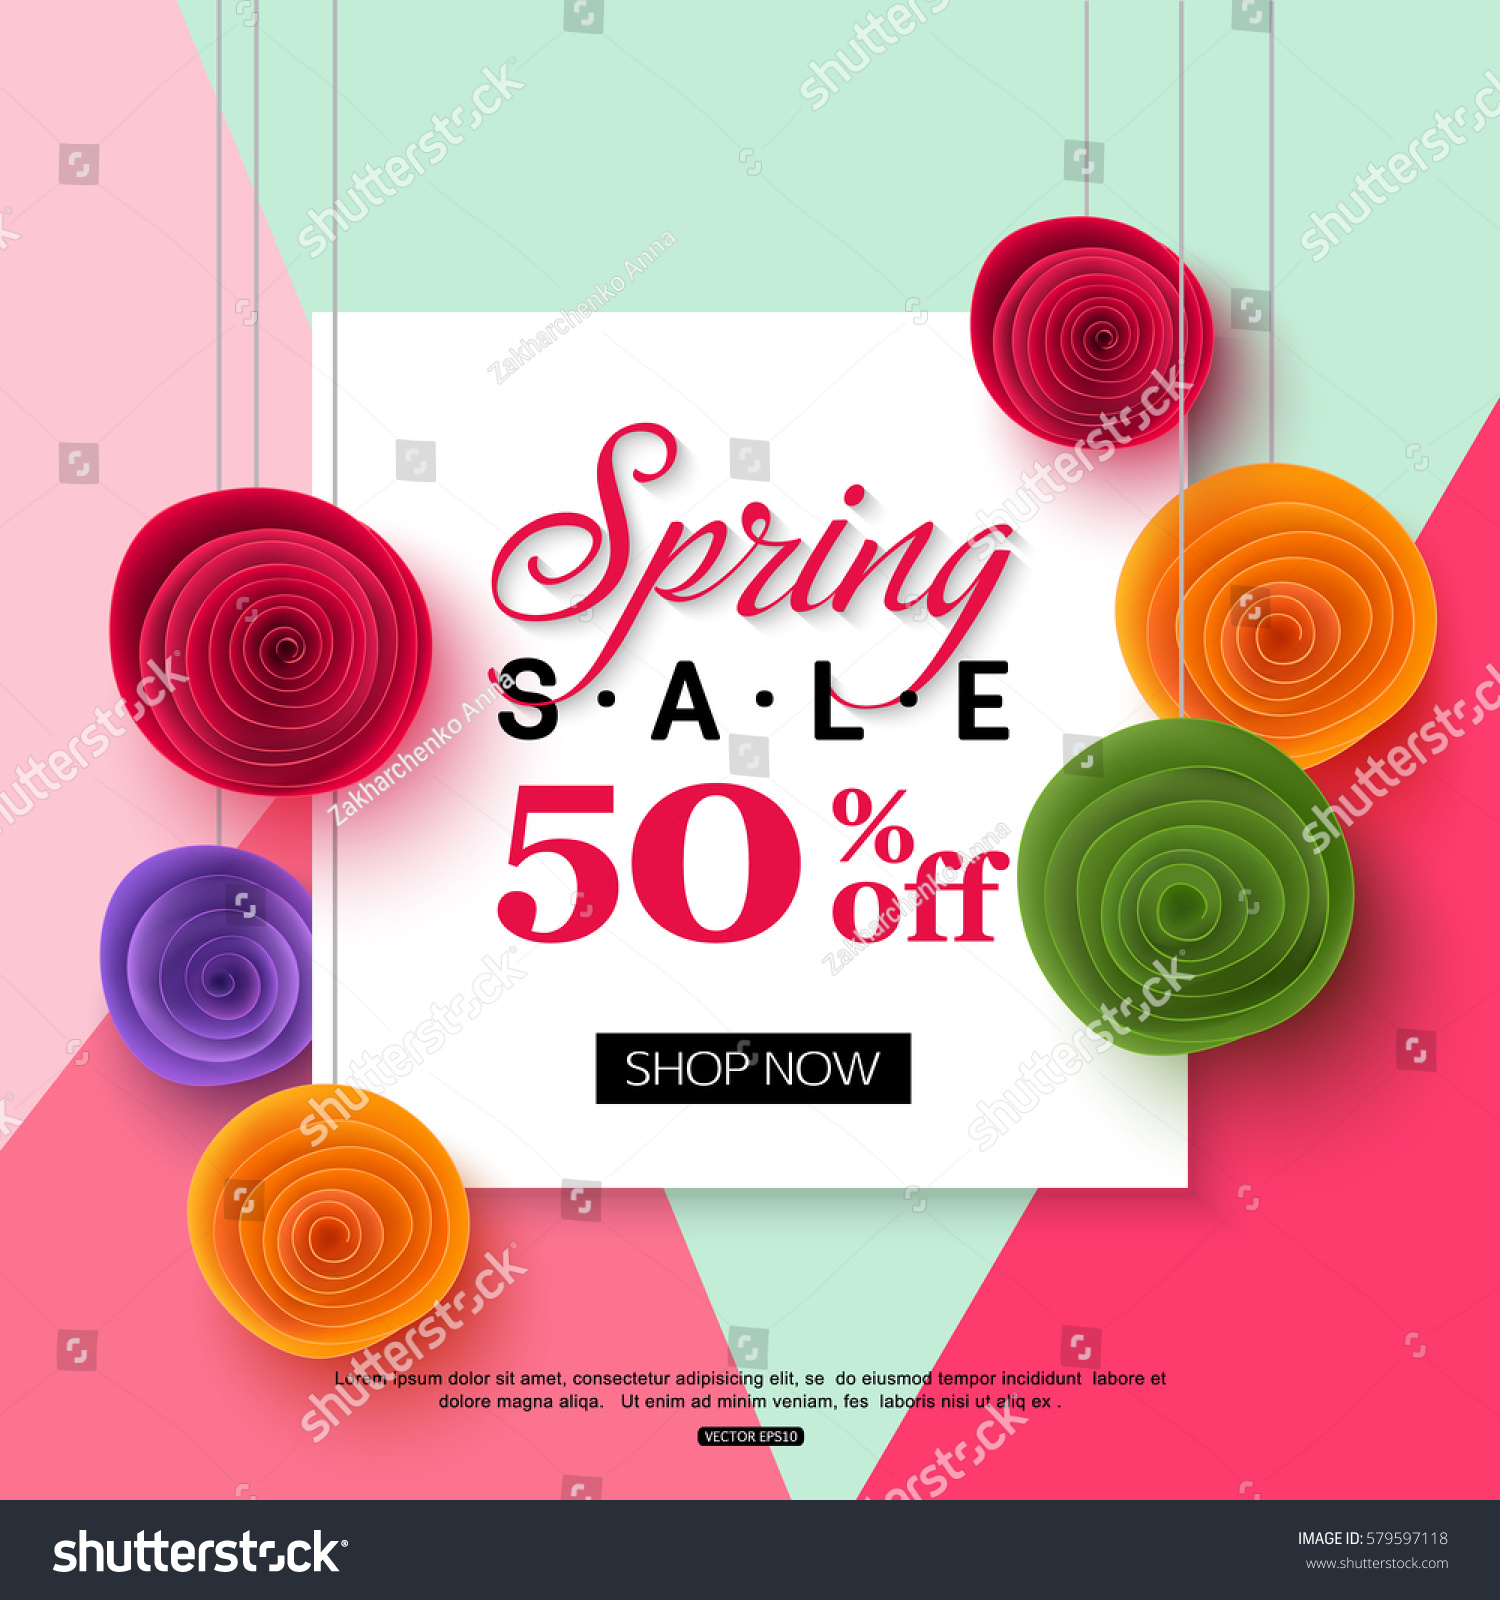 spring sale banner template paper flower stock vector 579597118 shutterstock. Black Bedroom Furniture Sets. Home Design Ideas